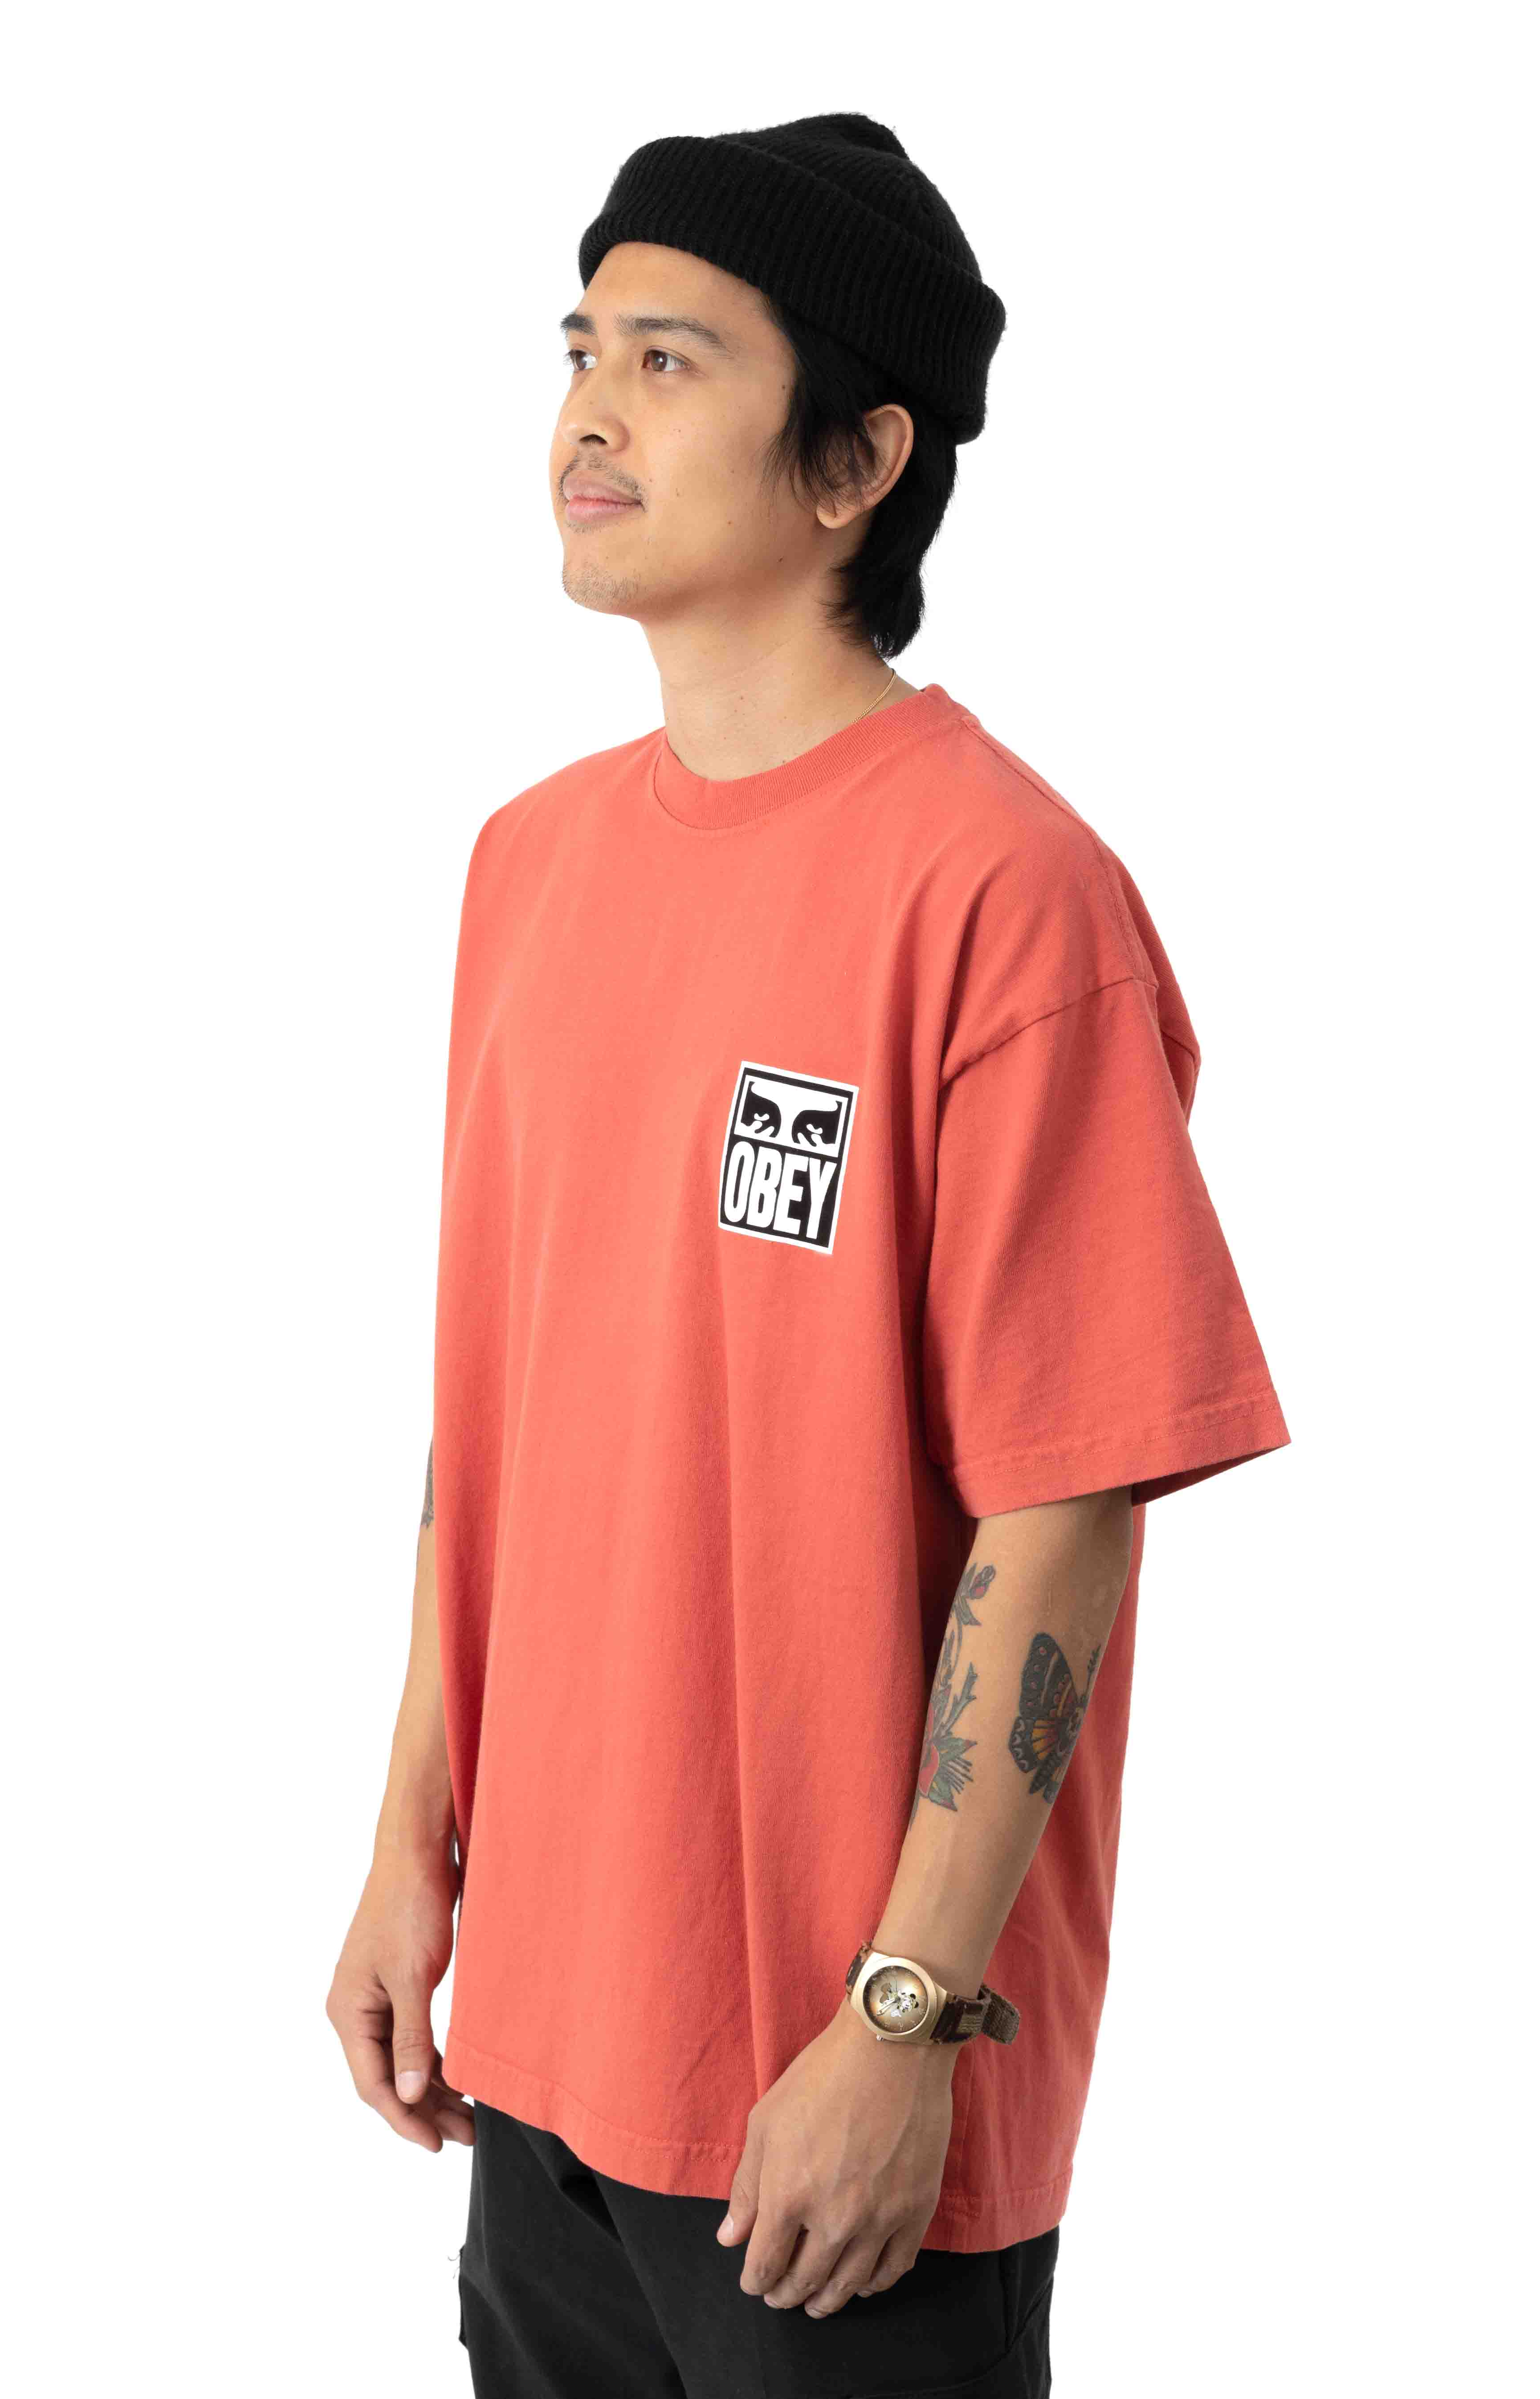 Eyes Icon 2 Heavyweight T-Shirt - Chili 2